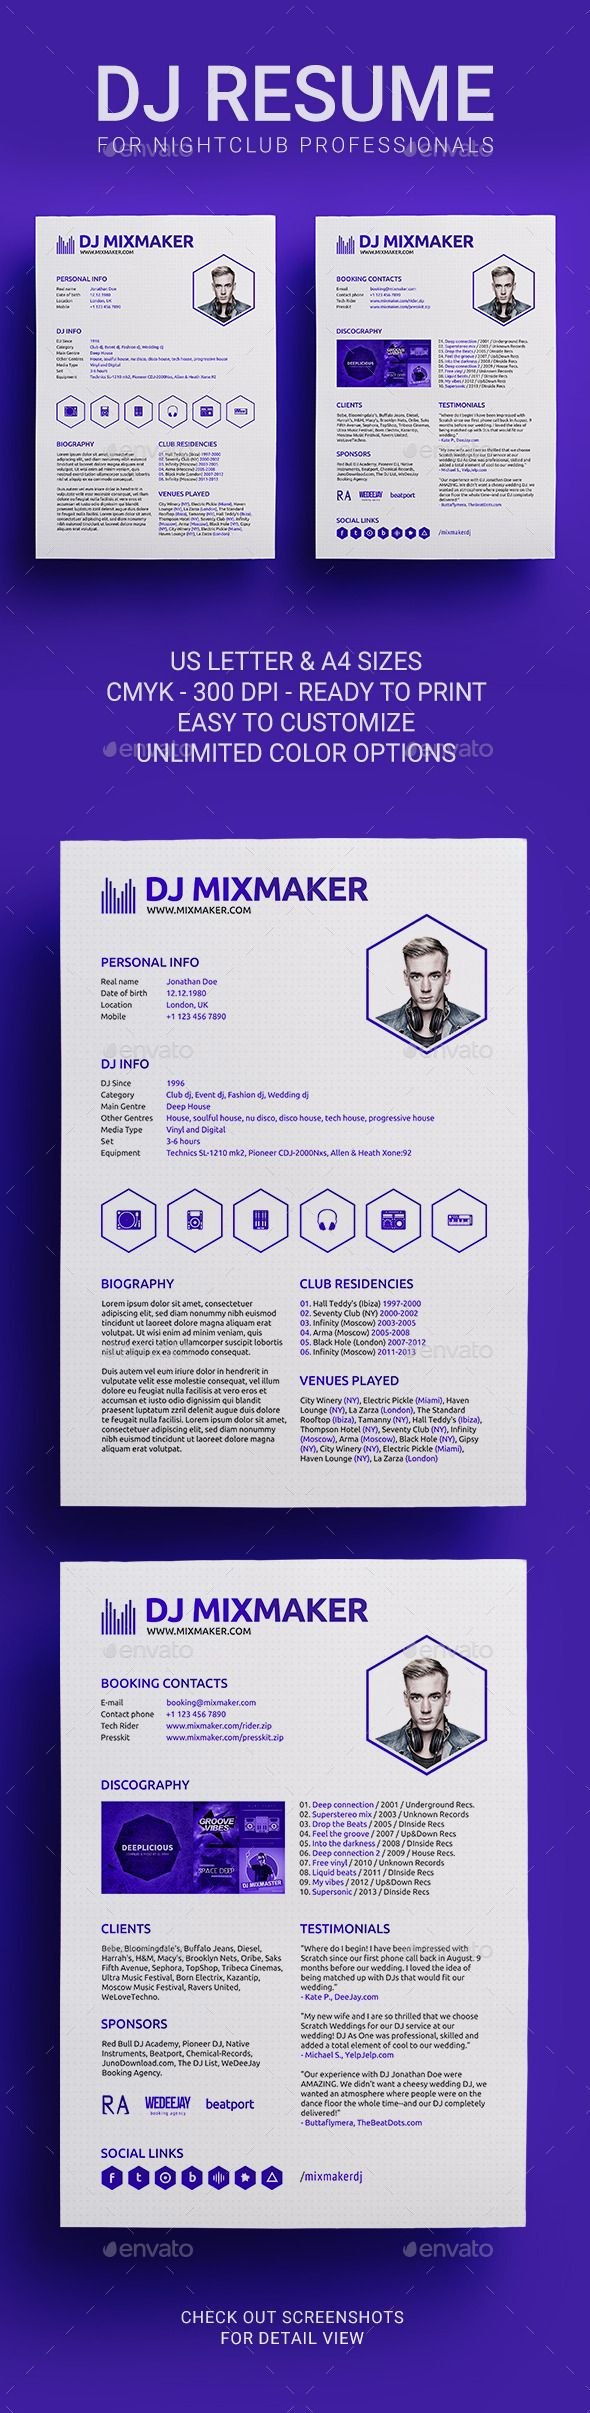 dj resume radio host resume cover letter template for host resume sample mixmaker dj resume press